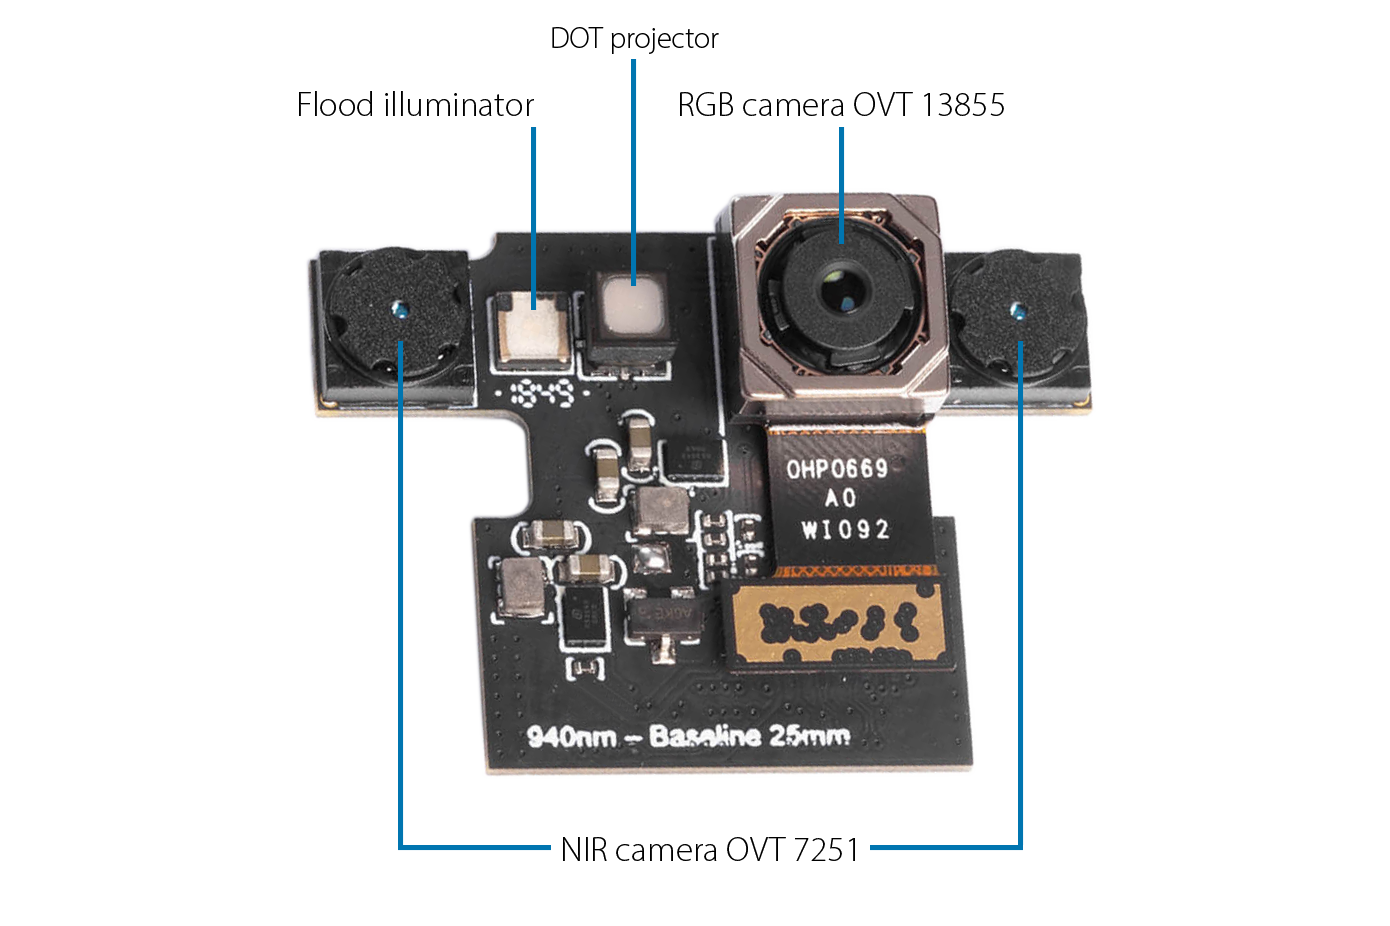 Stereo Vision Reference Design